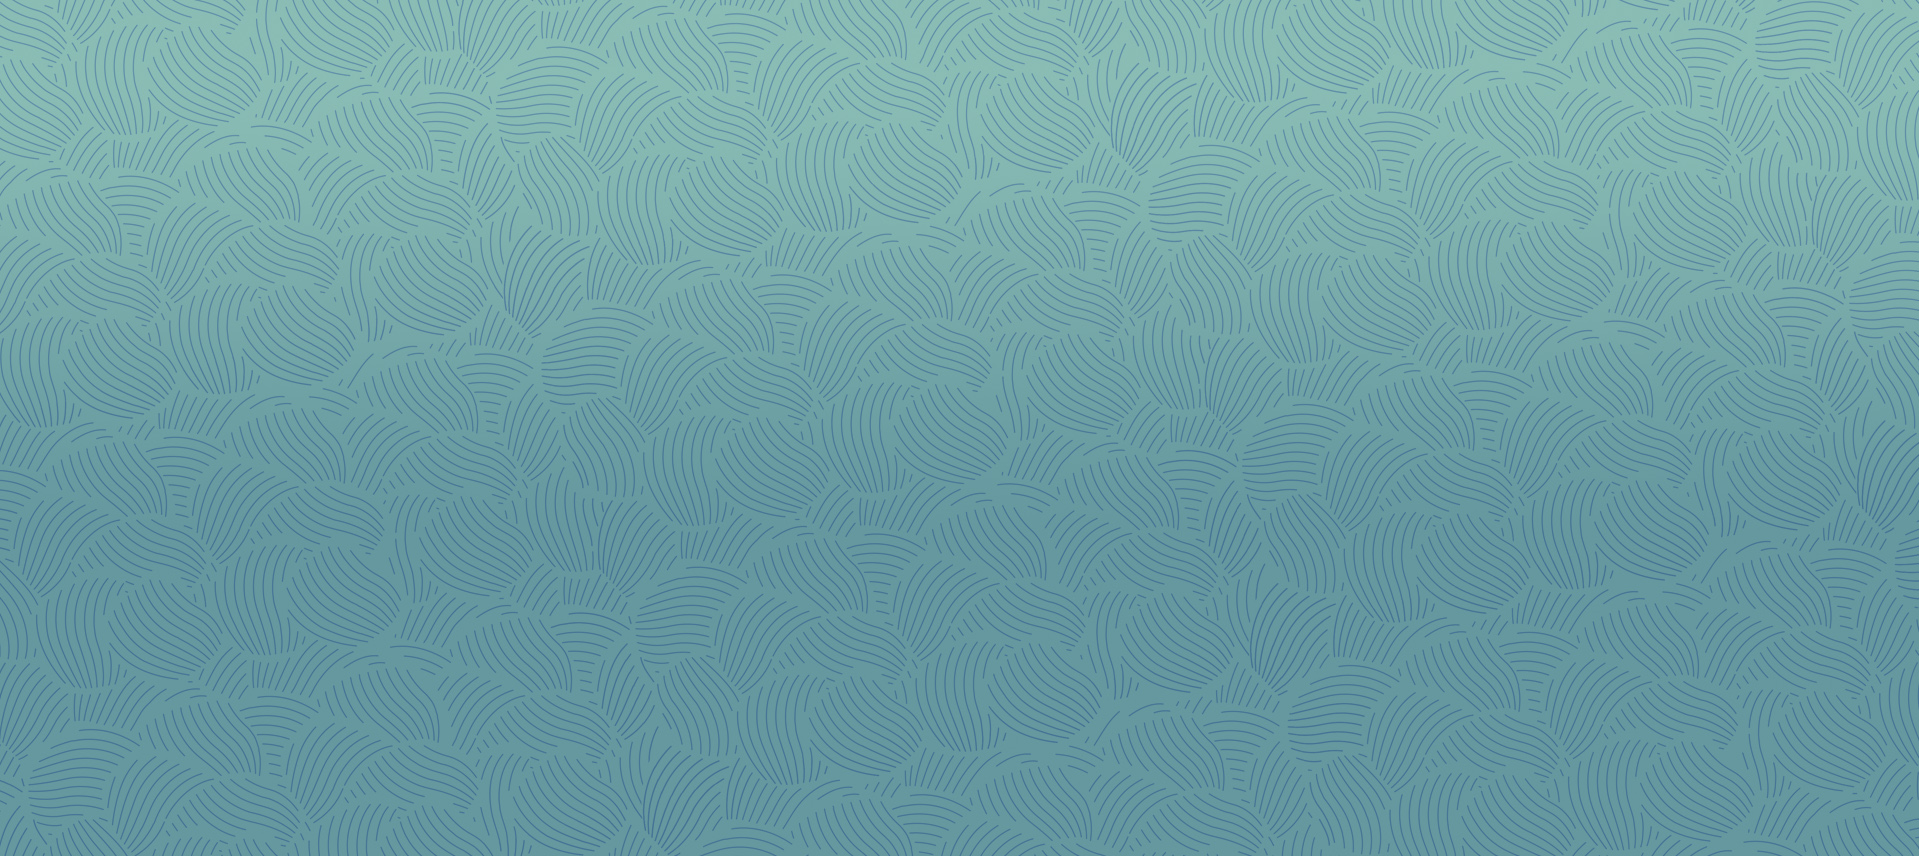 How To Design Seamless Patterns In Illustrator